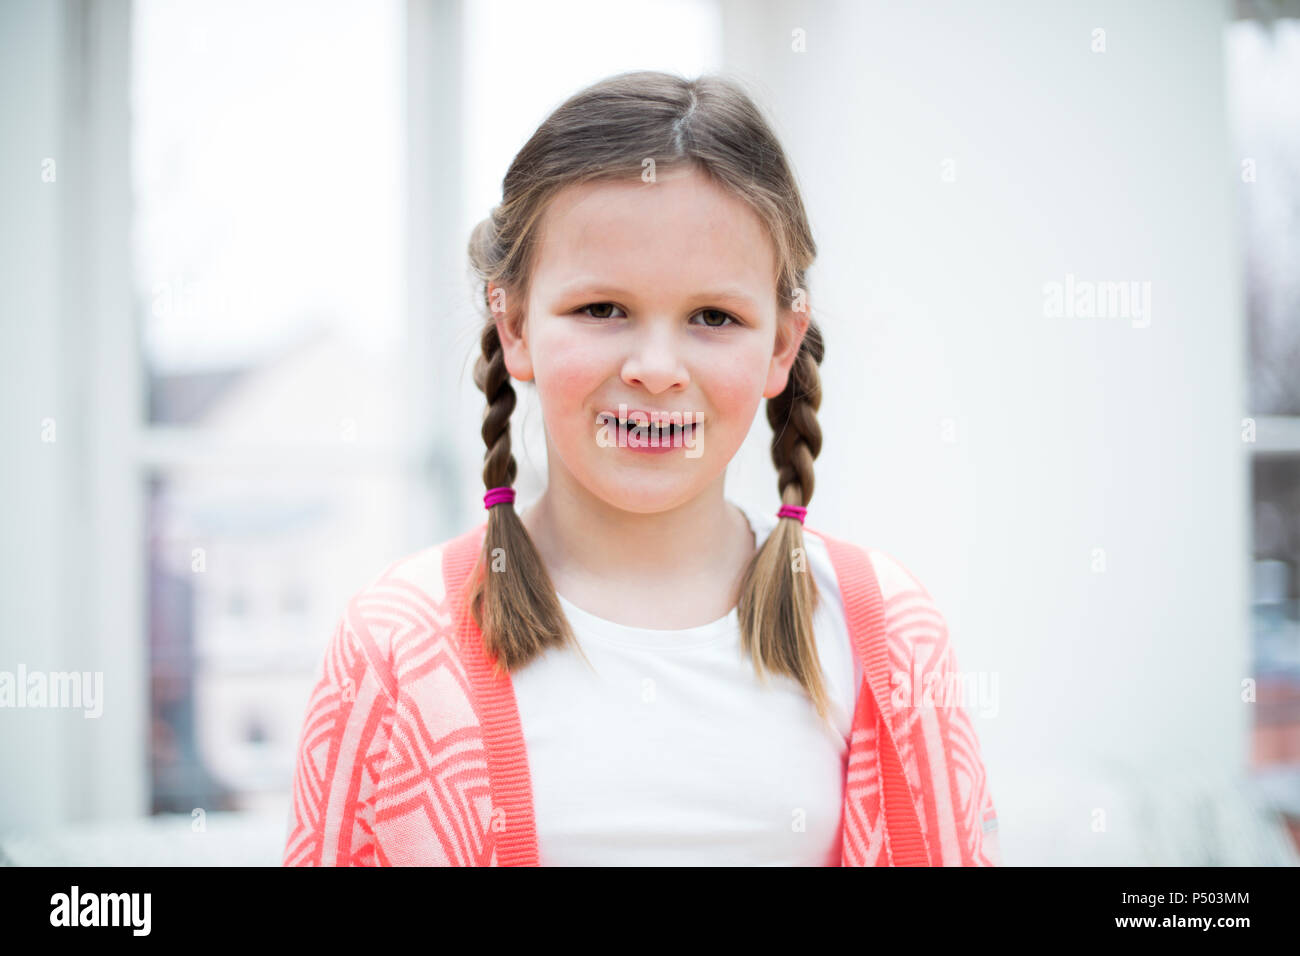 Portrait of smiling girl with braids - Stock Image